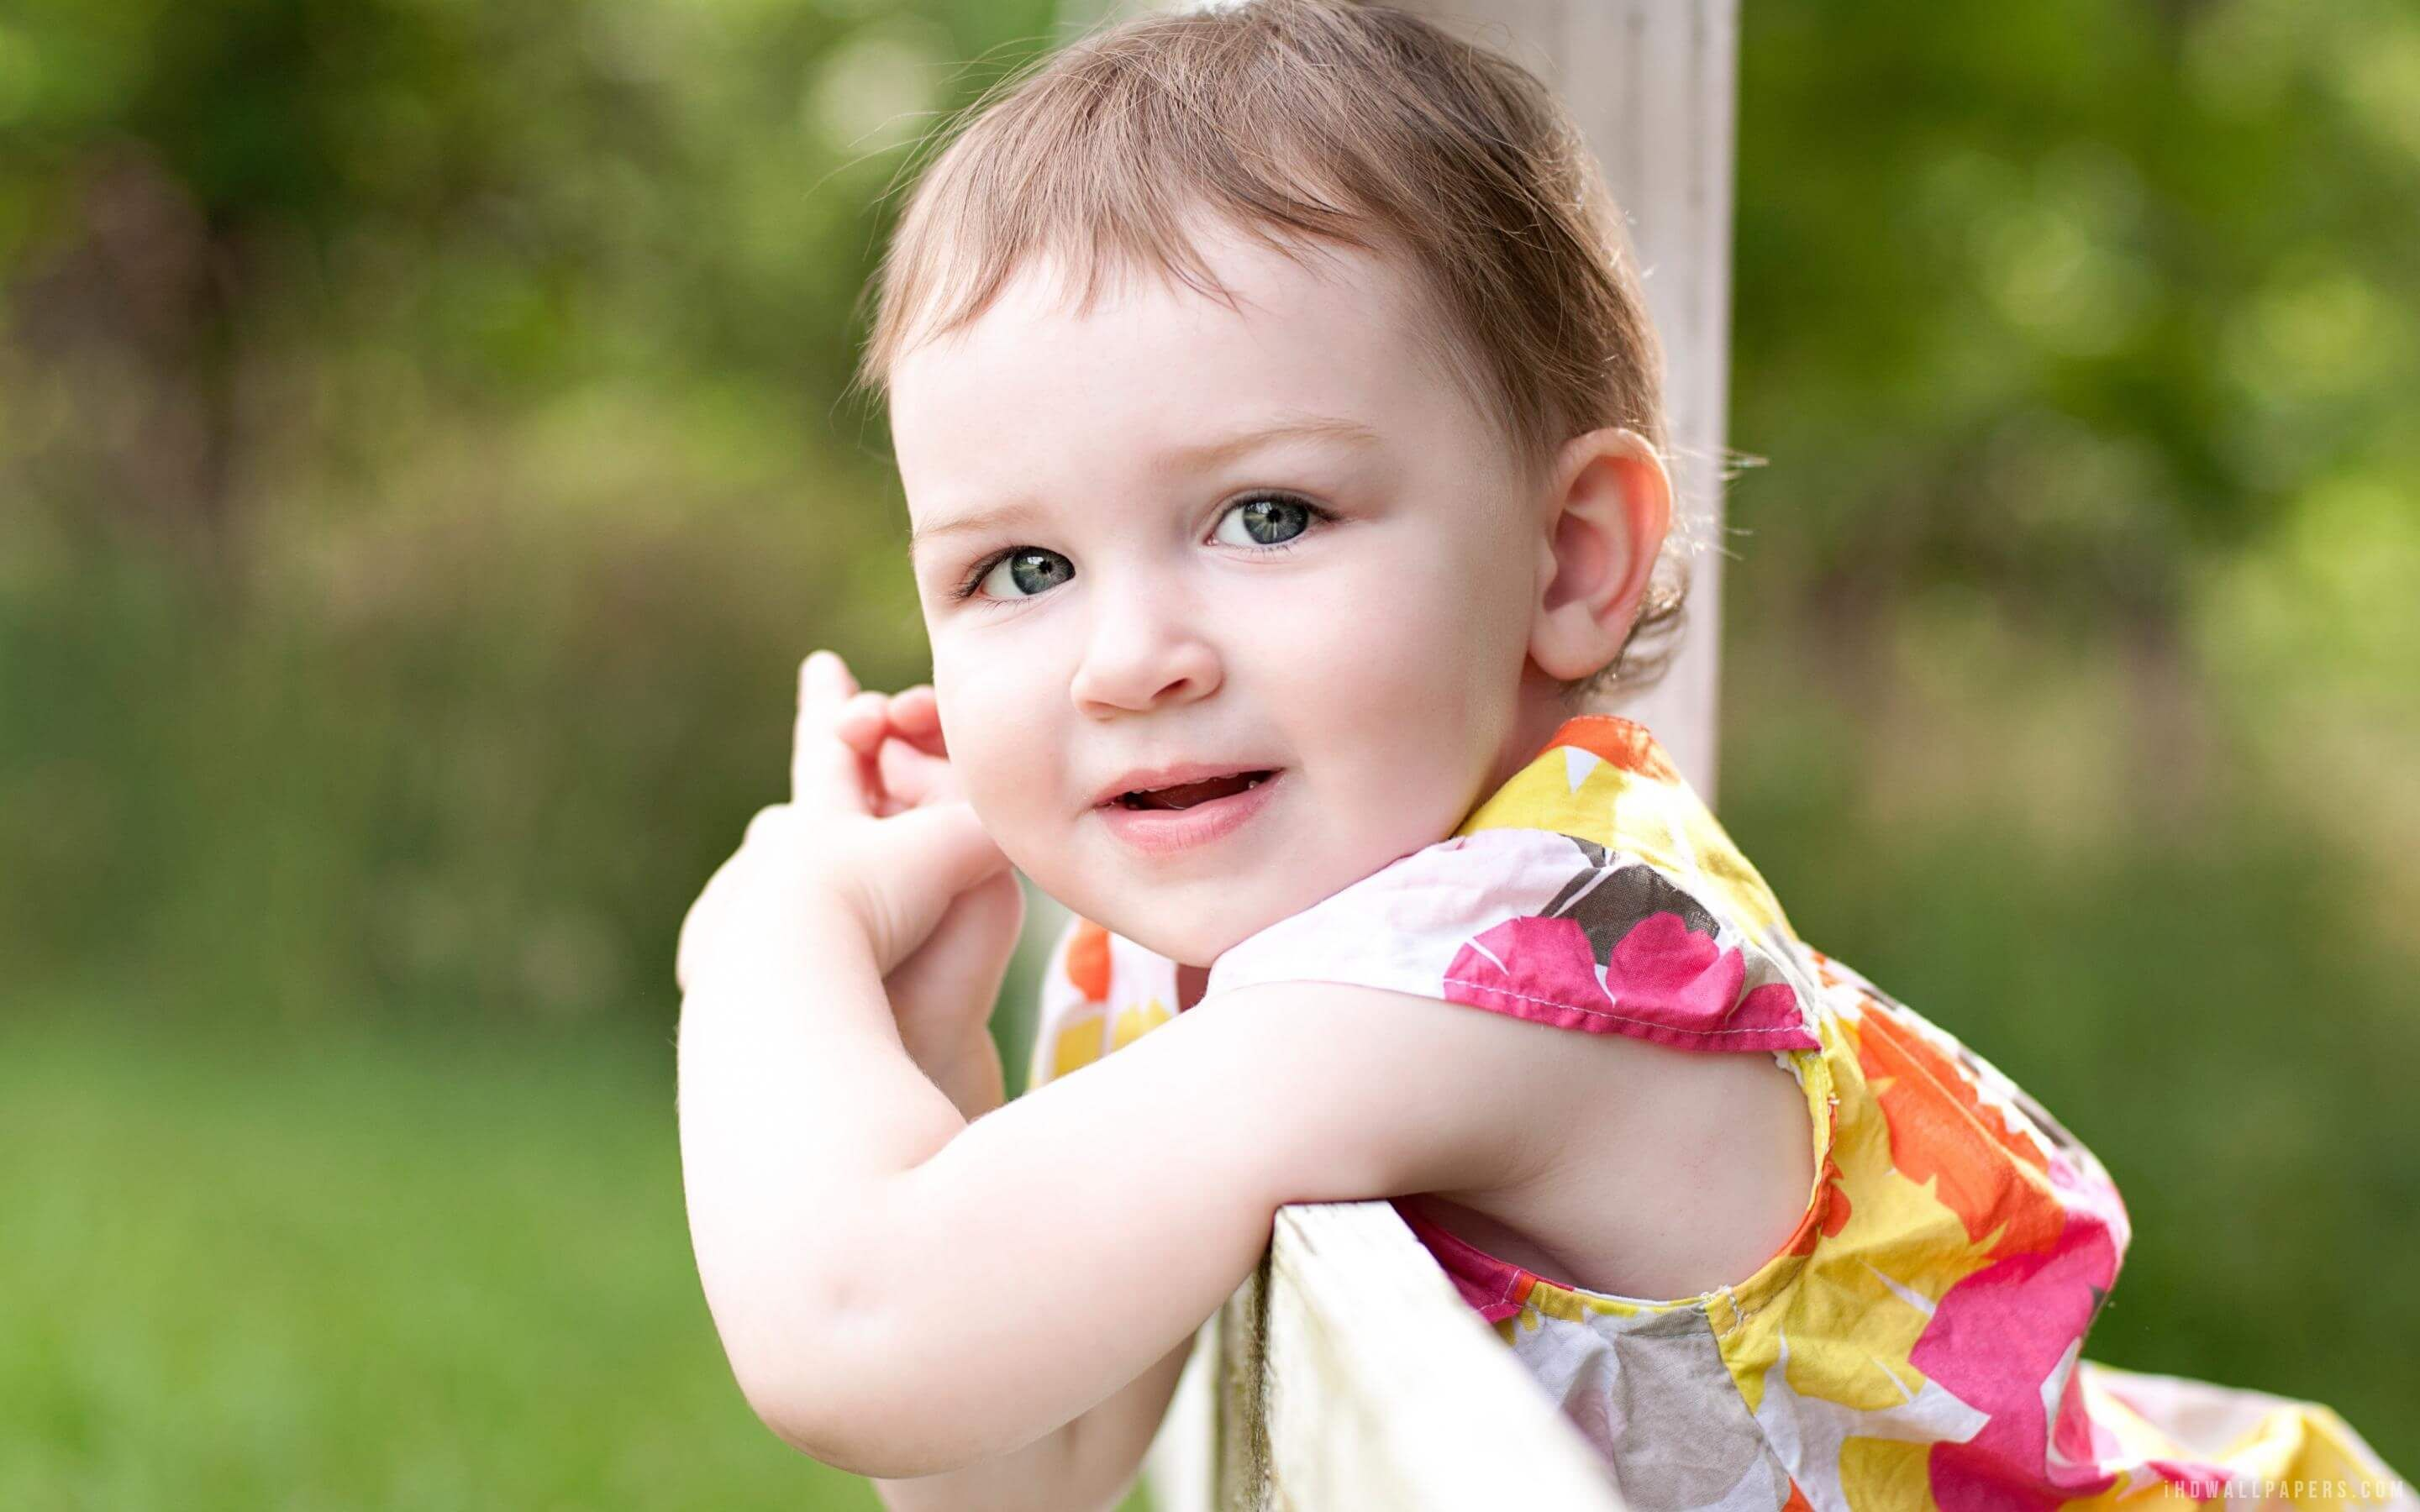 Cute Cute Baby Girls Clothes For You Baby Fashionterest Beautiful Baby Pictures Cute Baby Wallpaper Baby Wallpaper Hd